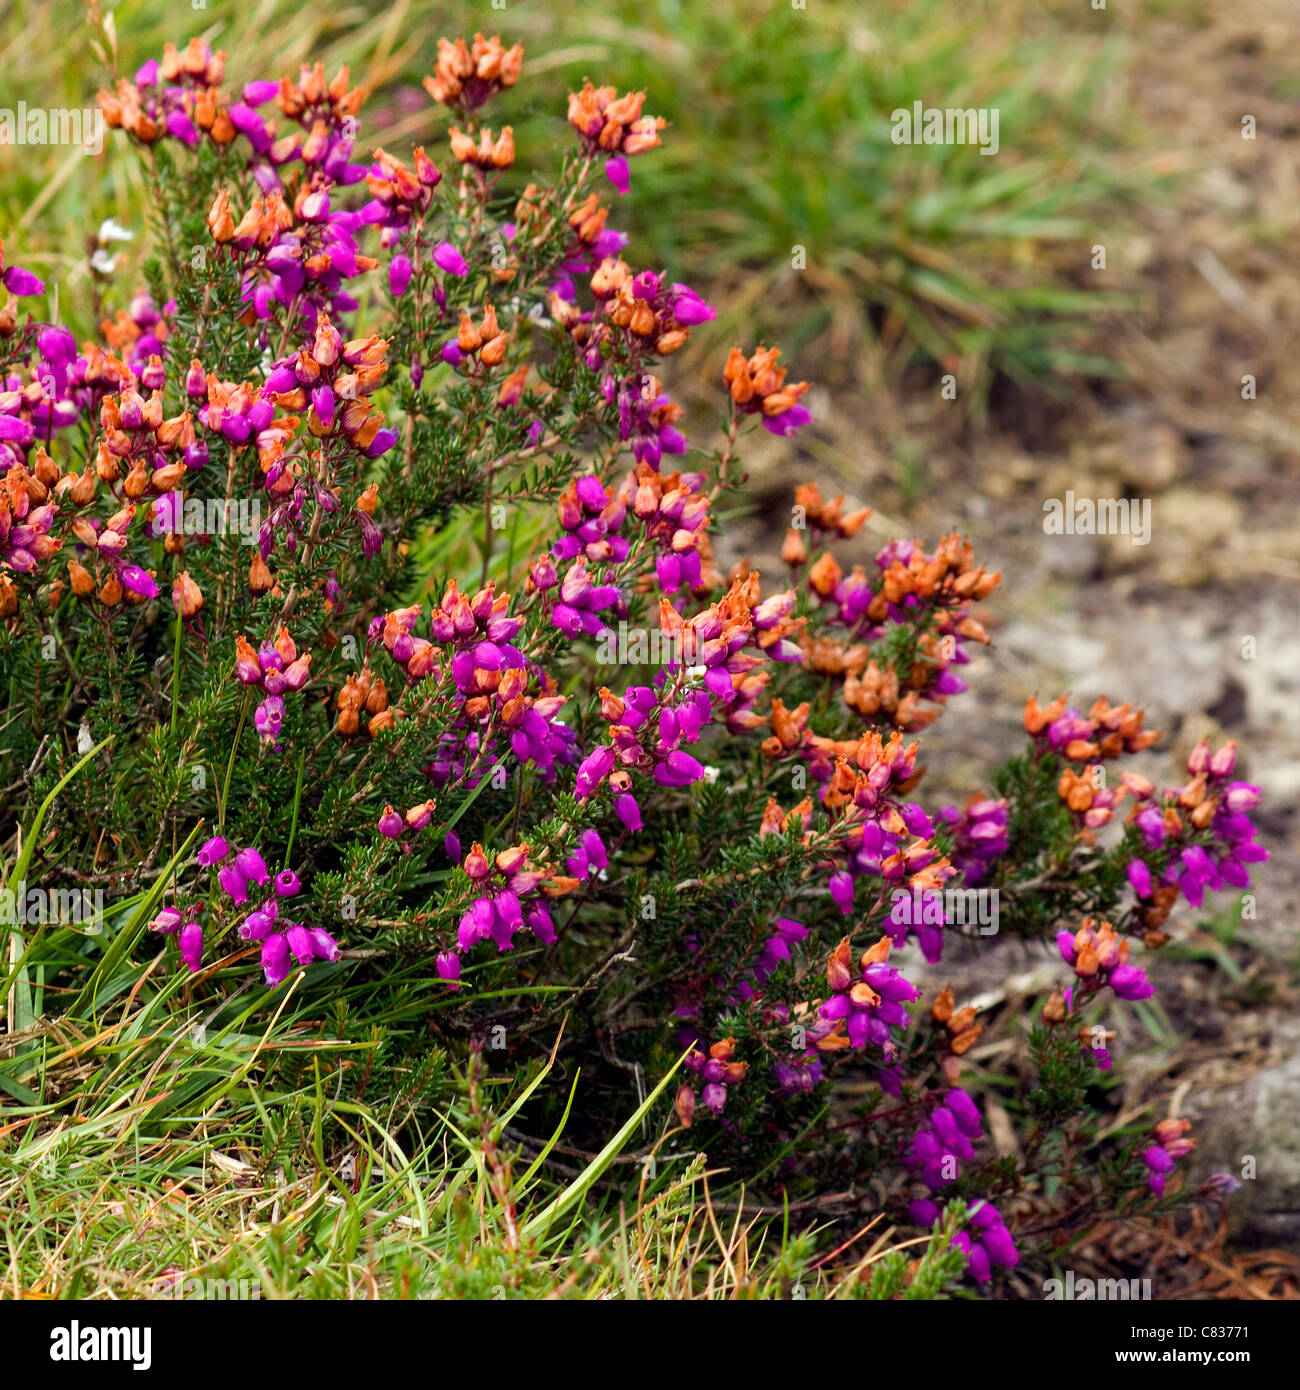 Heather, (Calluna vulgarisclose) up picture in bloom. - Stock Image